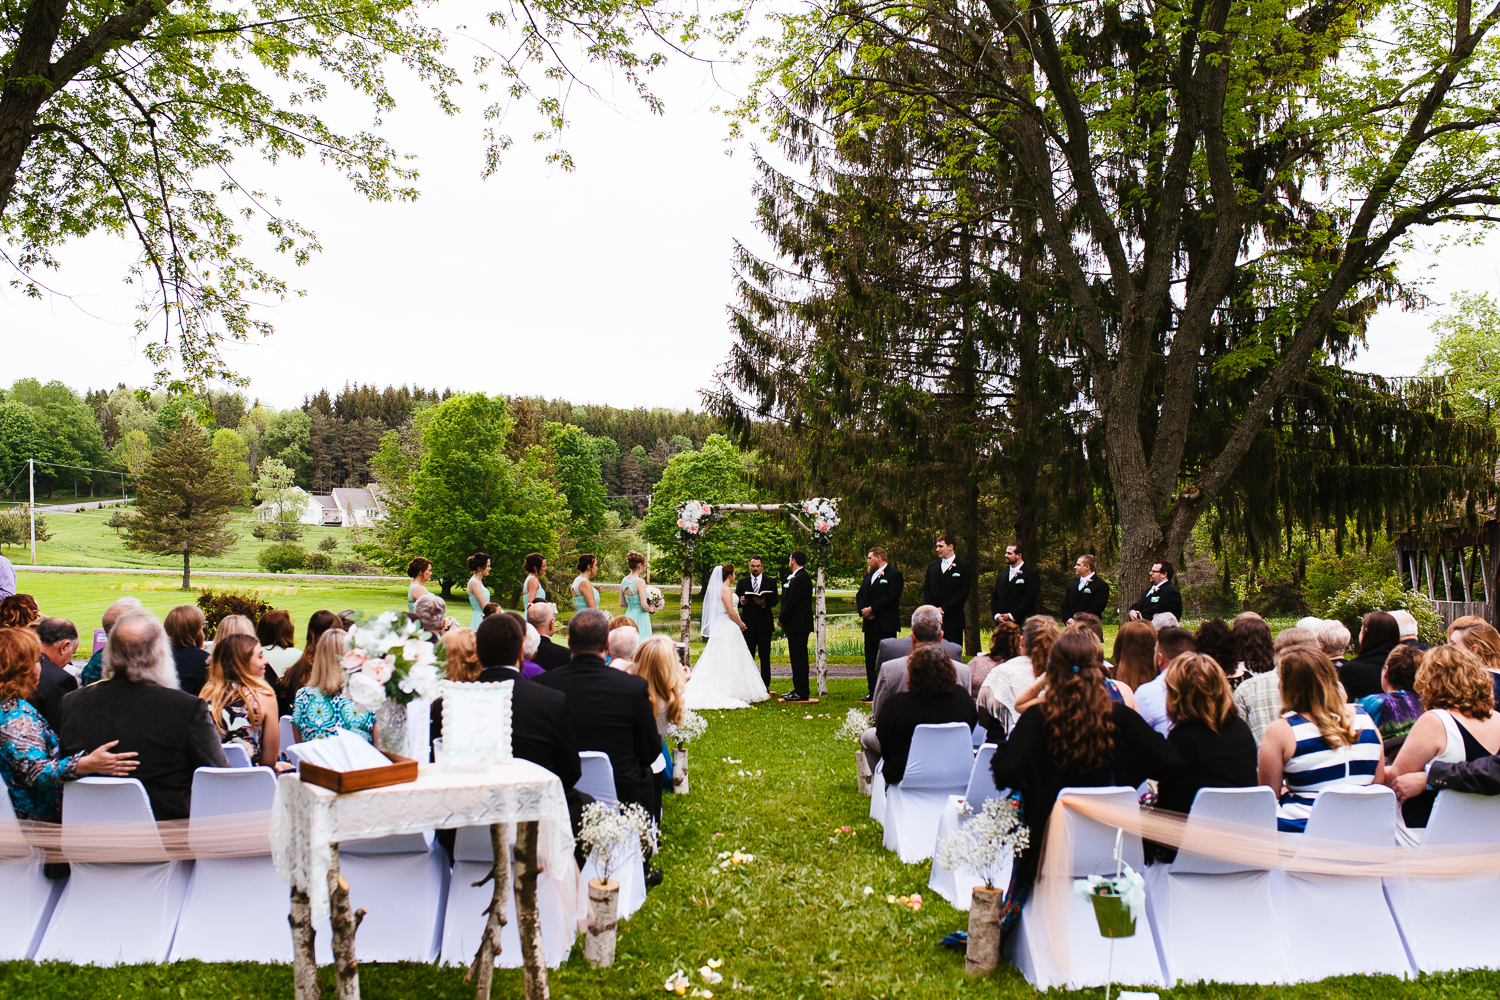 Wide view of an outdoor wedding ceremony.